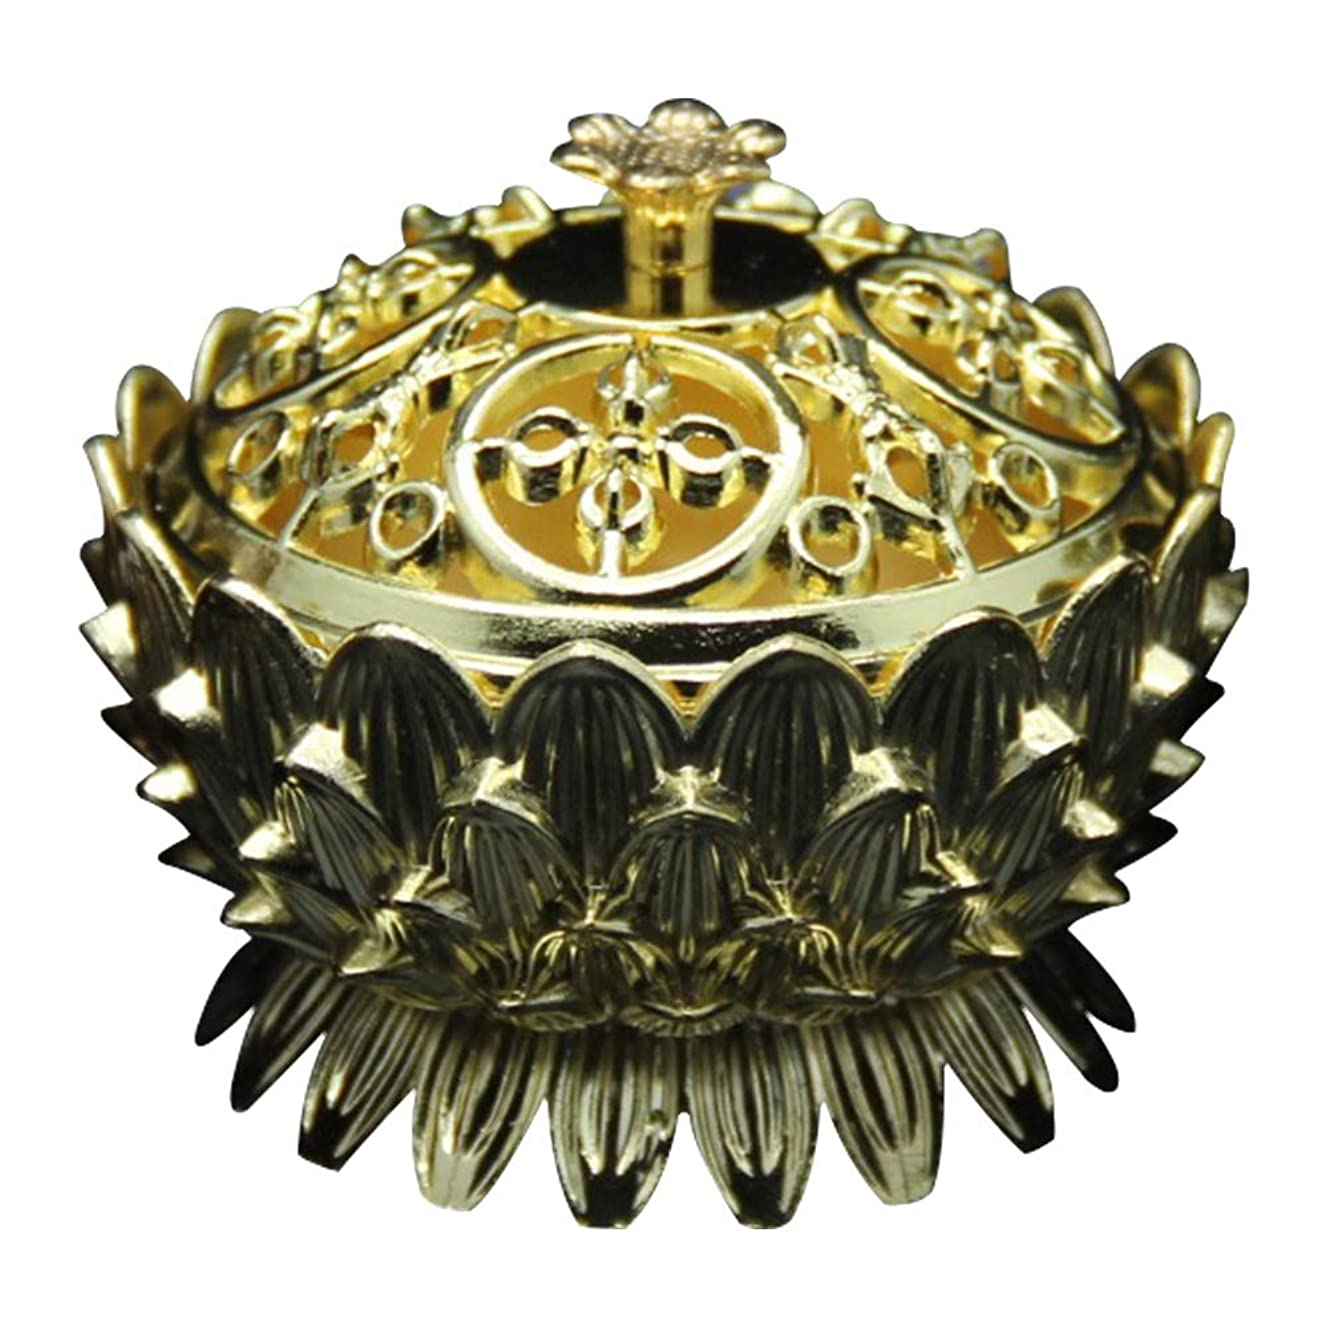 数学デコードする涙Retro Zinc Copper Alloy Bronze Incense Burner Home Decor Mini Lotus Tibet Incense Burner Holder Fit for Stick Cone Coil Incense(Gold)